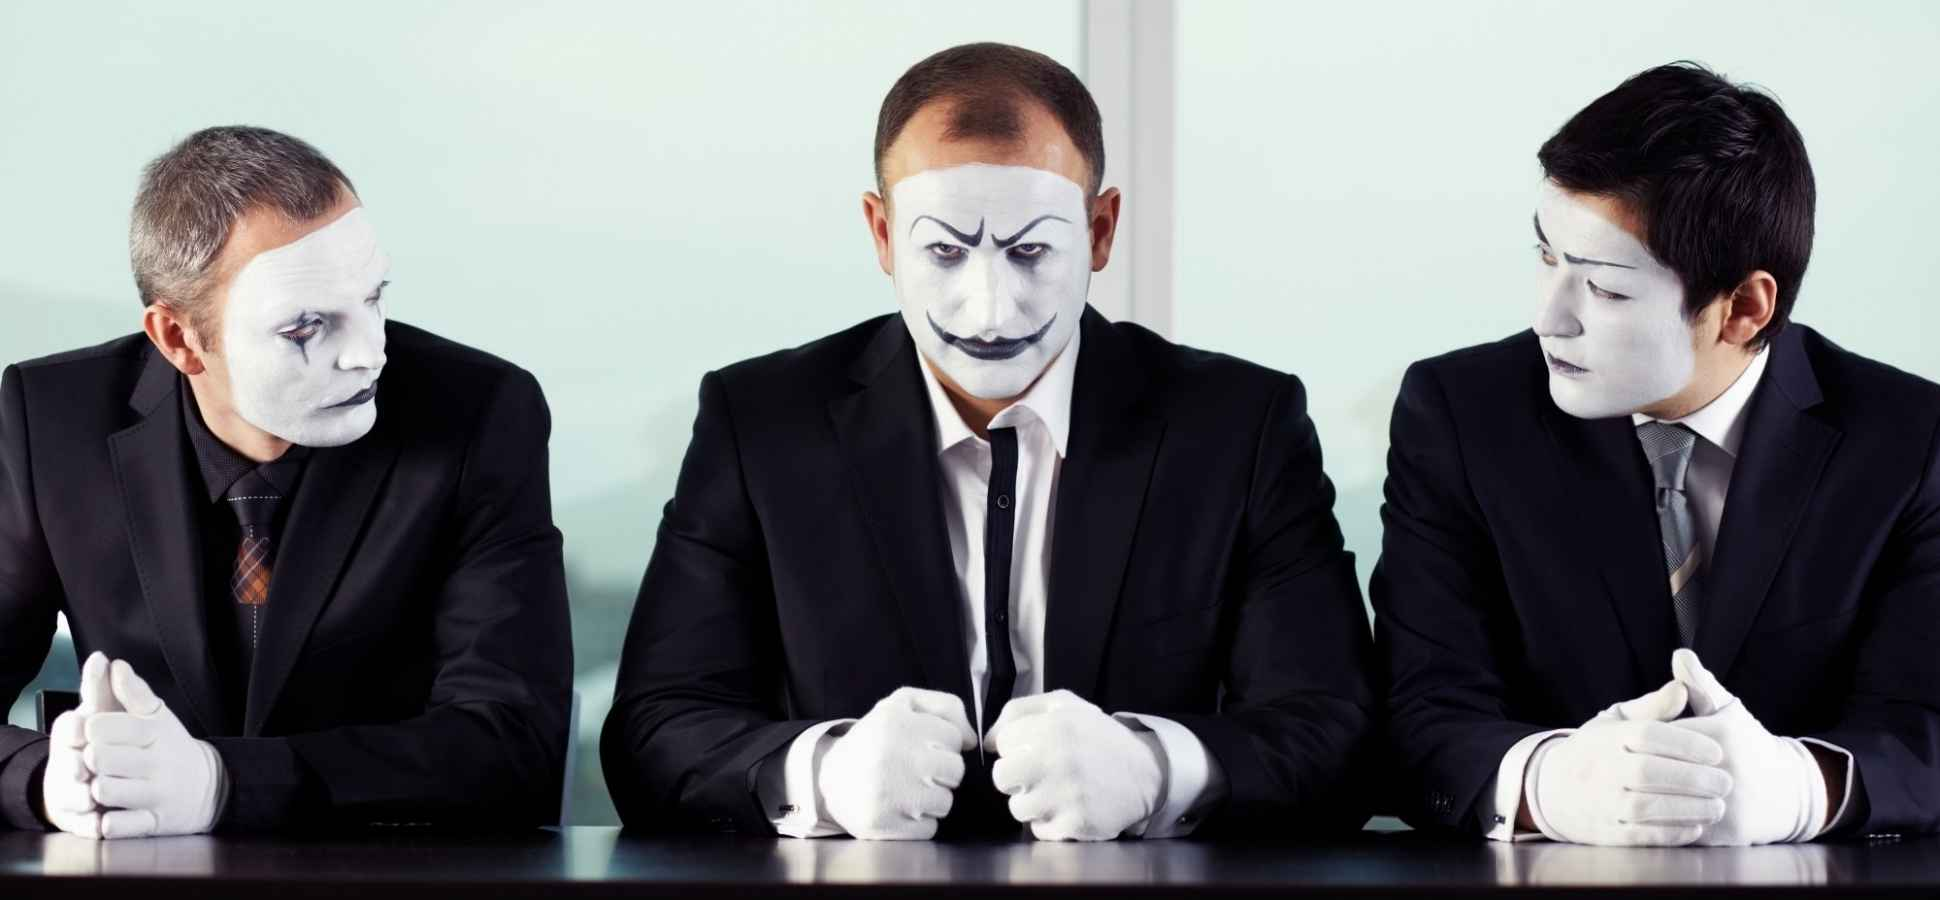 11 Signs Your Co-Worker Is a Passive-Aggressive Person | Inc com